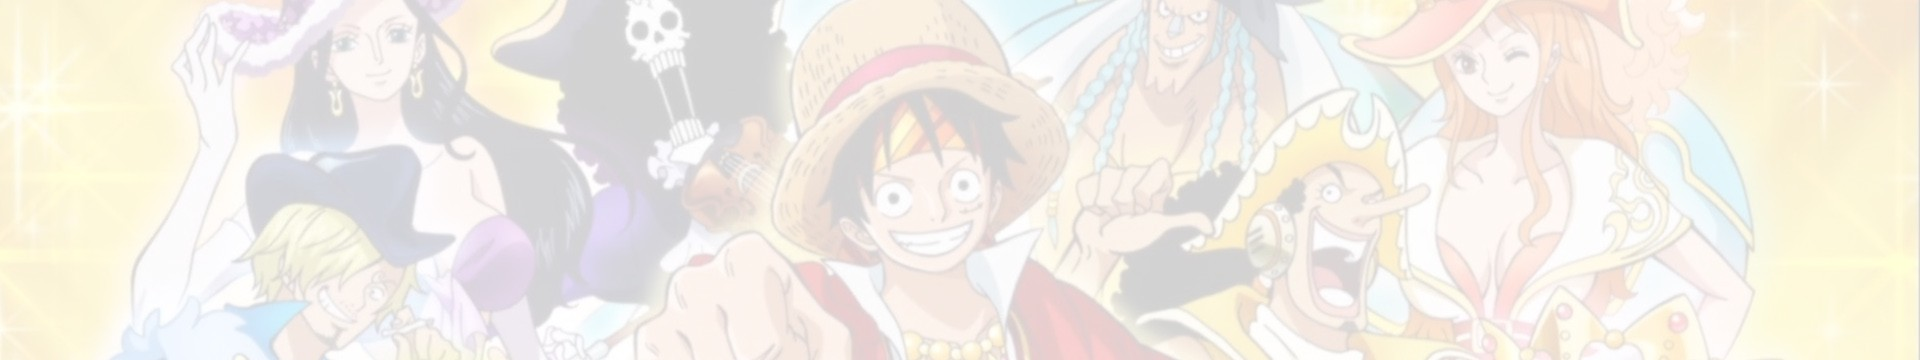 OnePiece 2 - Pirate King